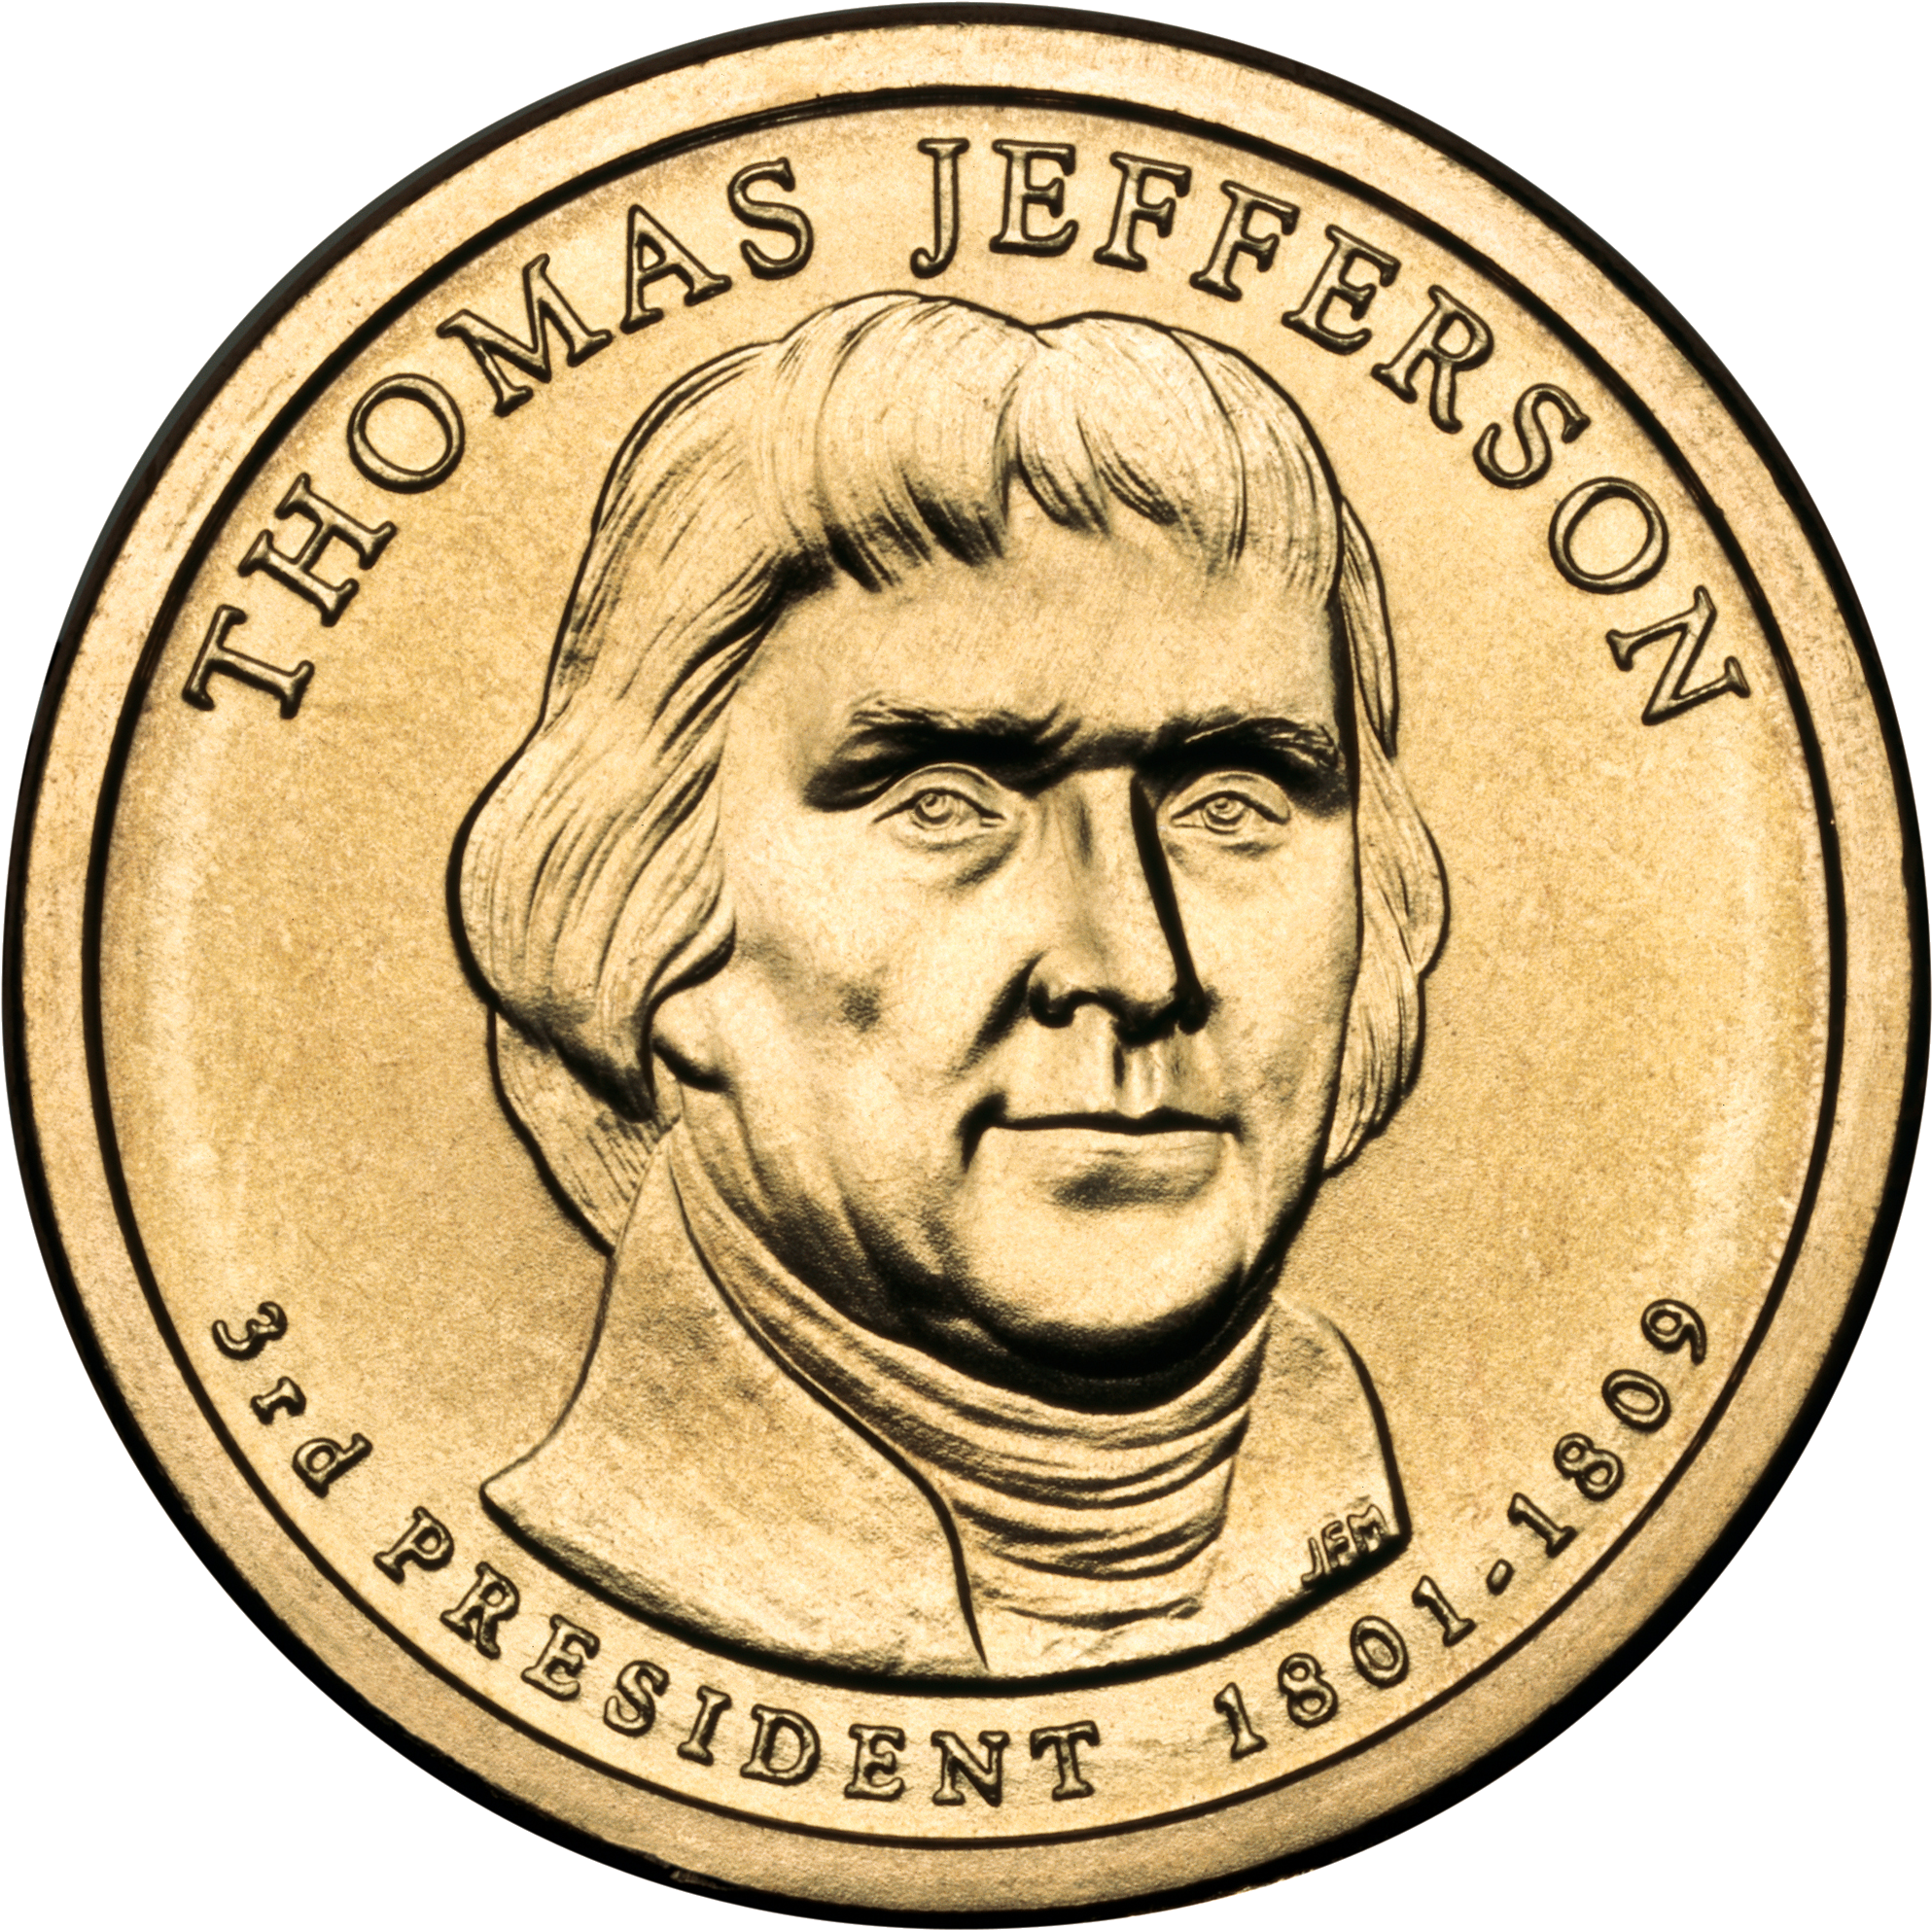 Thomas Jefferson Clipart Full Size Clipart 2151238 Pinclipart